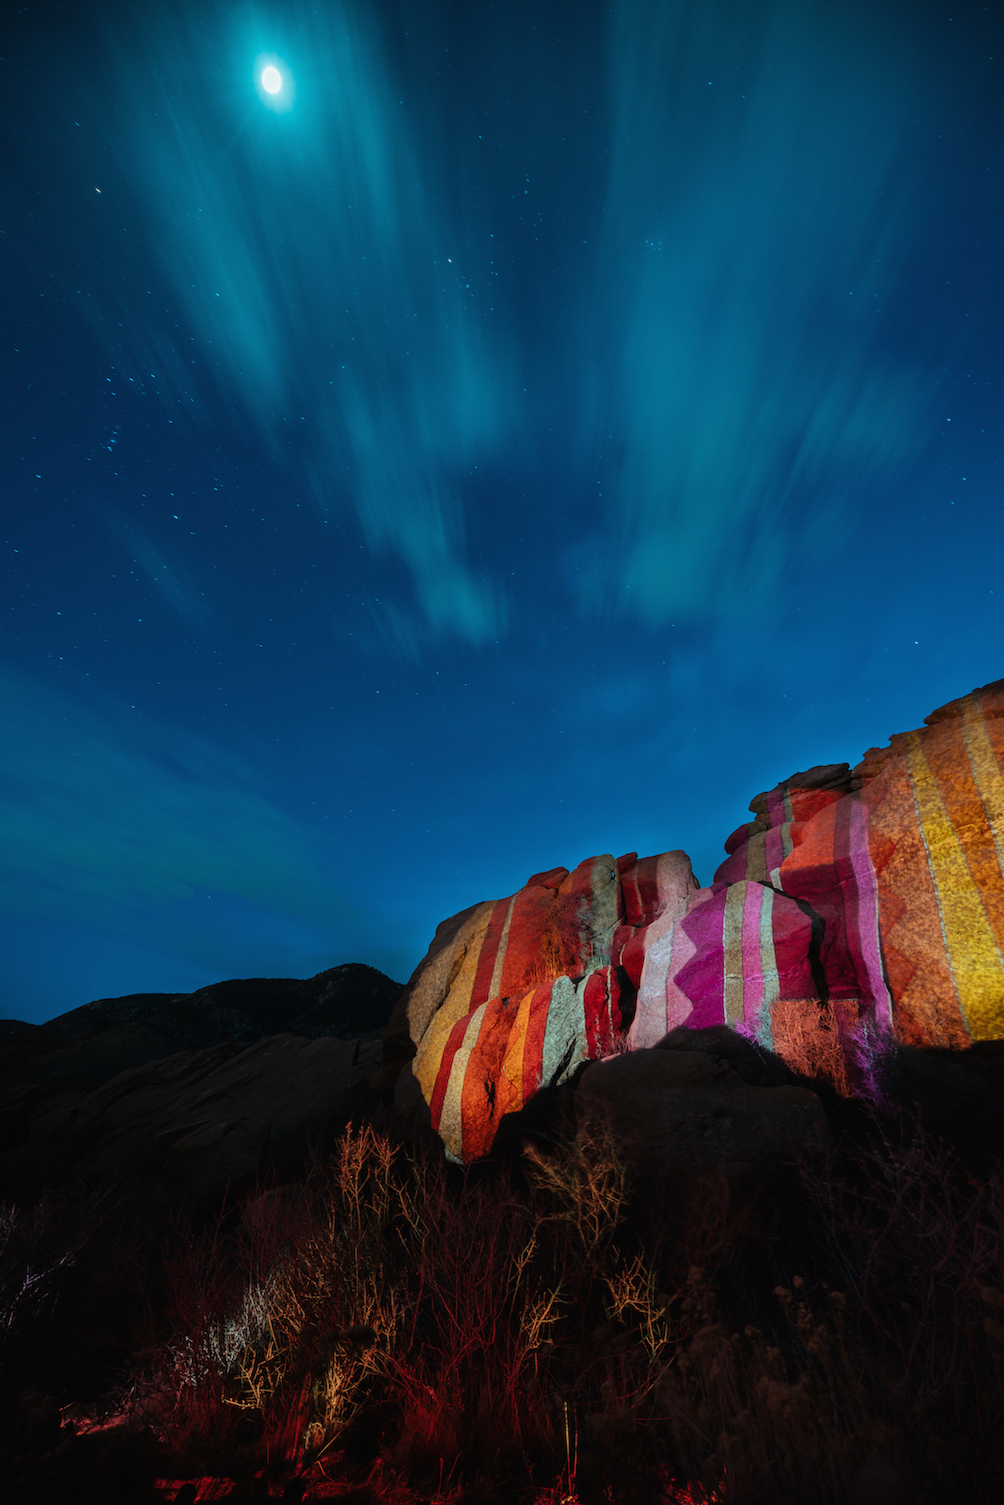 Ryan Good, Cori Anderson, 303 Magazine, Knomad Colab, Red Rocks, Digital Graffiti